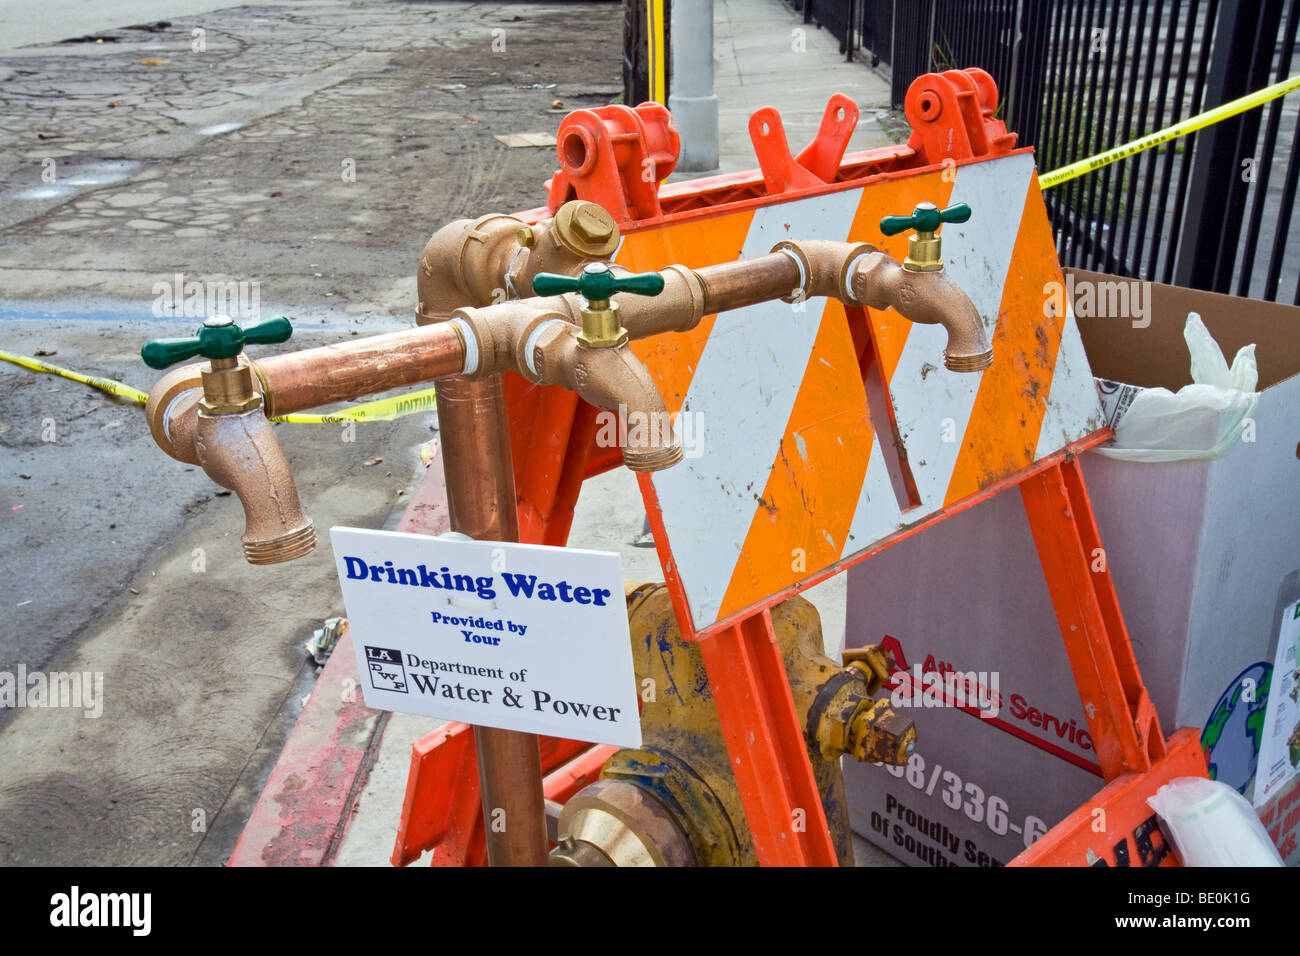 DWP drinking water spigot, Los Angeles, California, USA - Stock Image